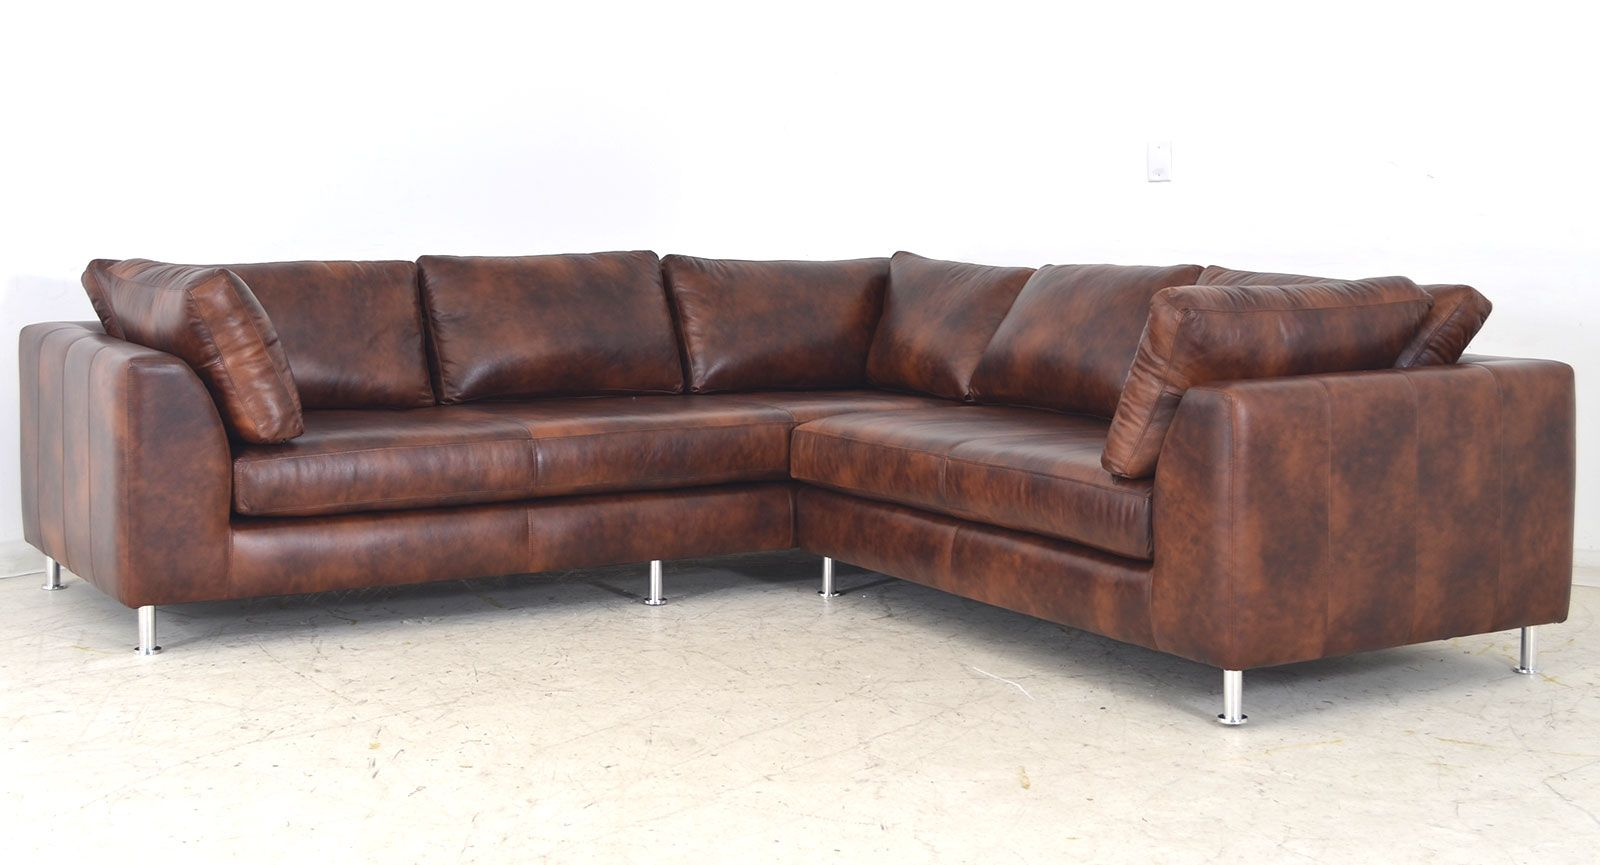 Vintage Leather Sofa Company New York Fabric Bed Usa Made The Arcadia Furniture In Manufacturing